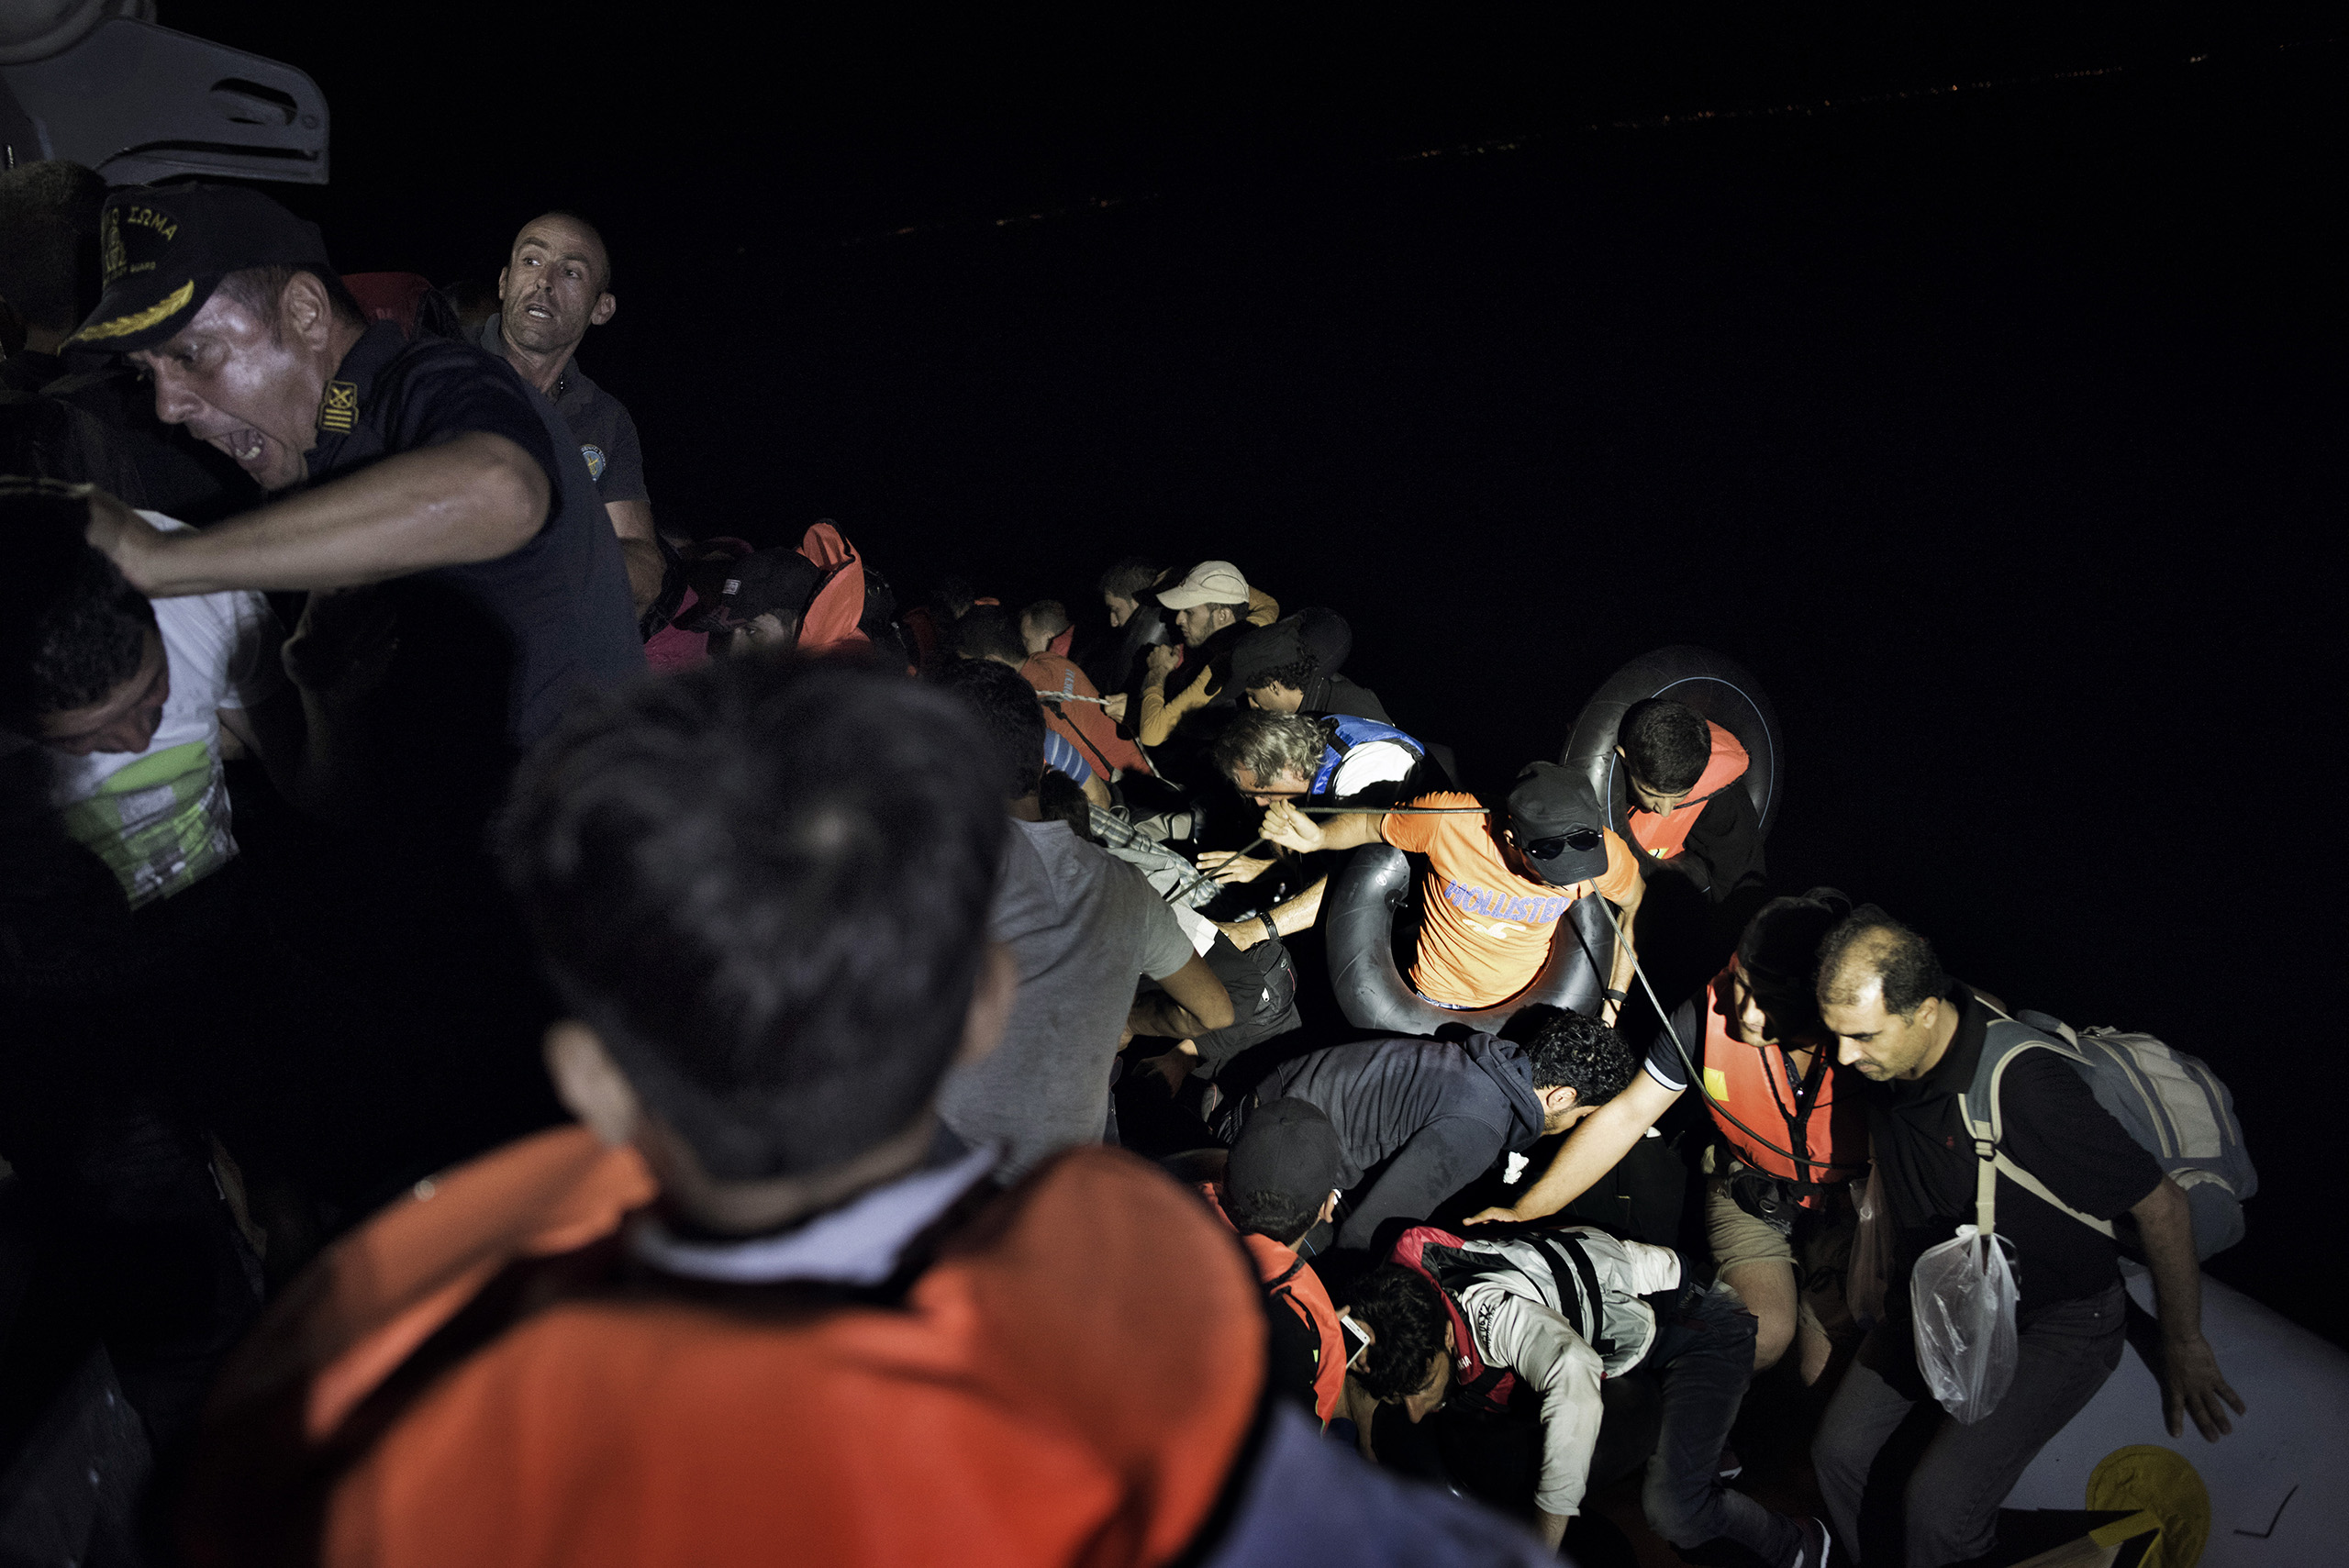 Syrian migrants scramble aboard a Greek coast guard vessel from the rubber motorboat they were using to cross from Turkey to the Greek islands. The coast guards have orders to rescue any migrant boats they find during night patrols of the Aegean Sea and bring them to Greece for processing and registration. Sept. 6, 2015.